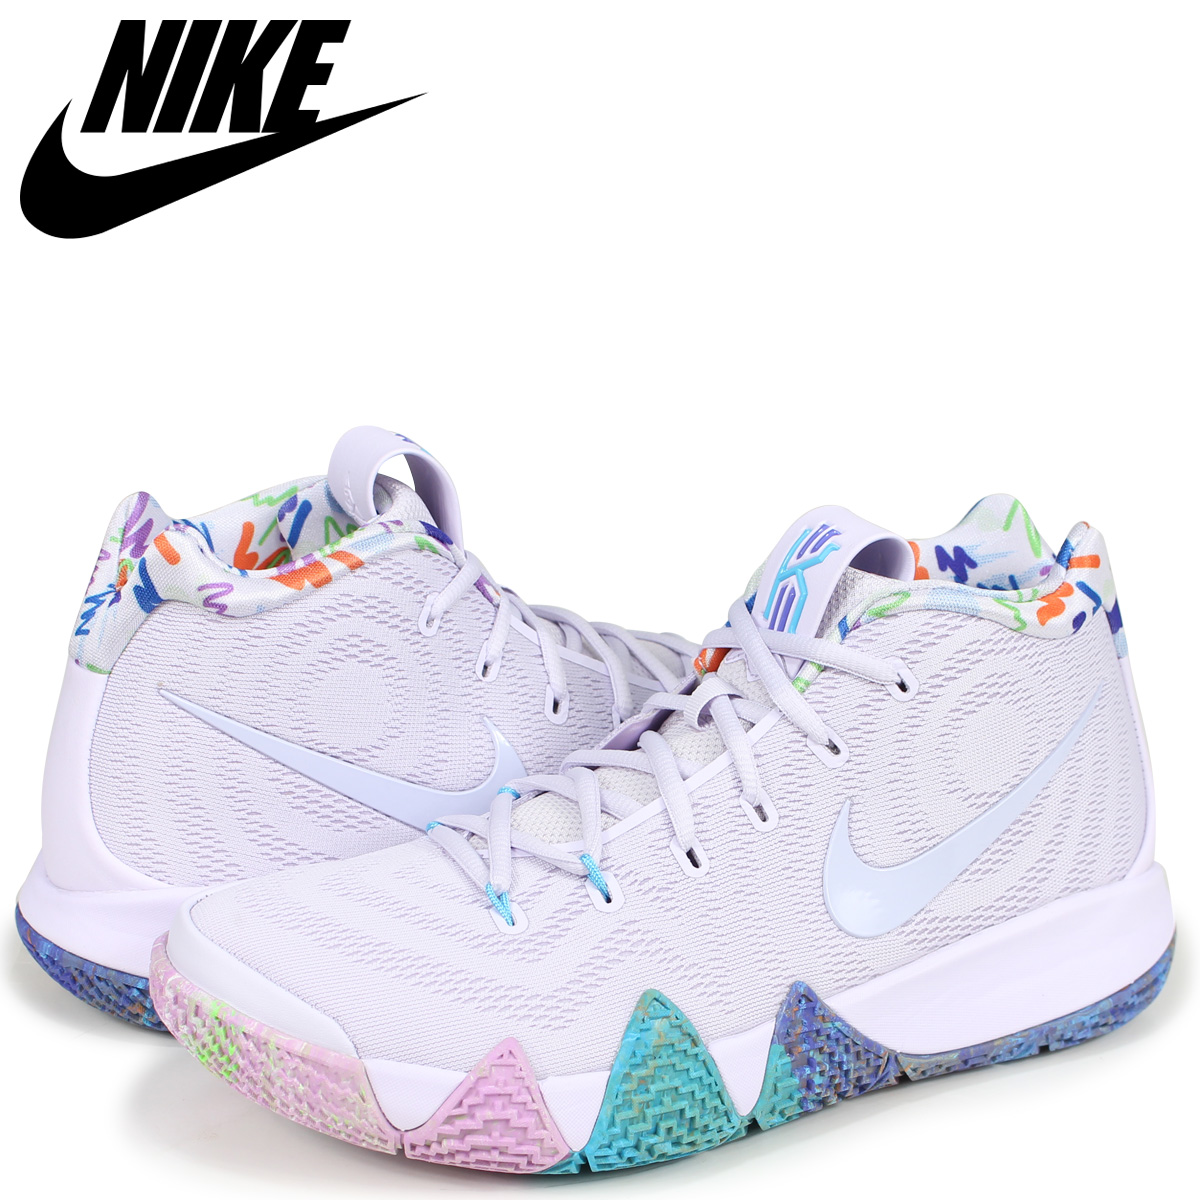 save off 1ec0b 28332 Nike NIKE chi Lee 4 sneakers men KYRIE 4 EP 90s 943,807-902 white